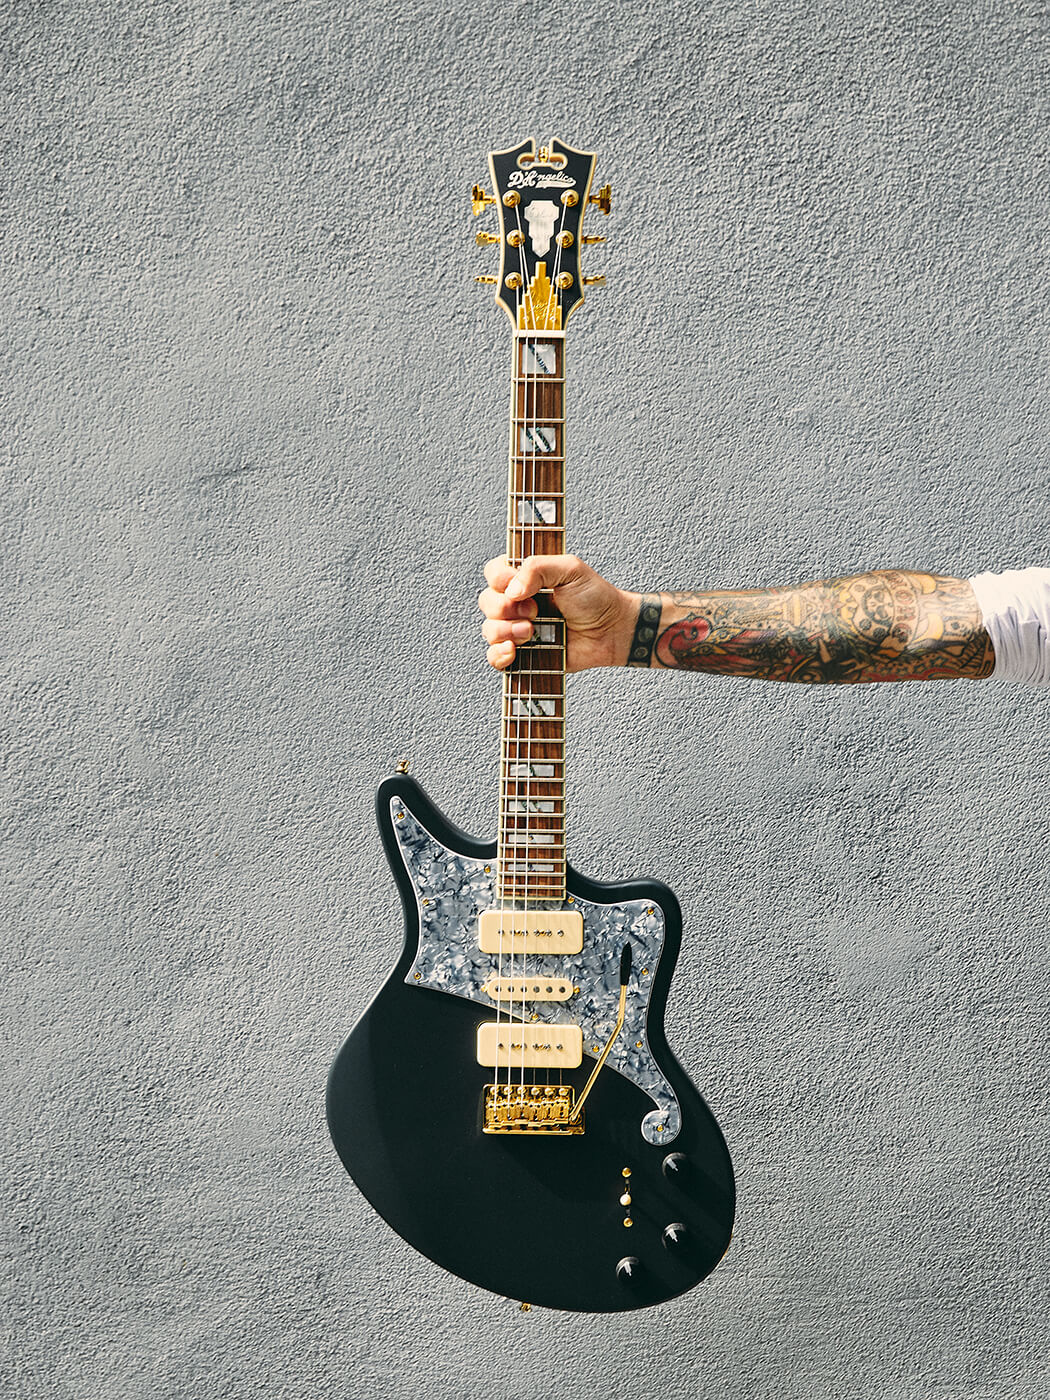 D'Angelico Deluxe Bob Weir Bedford Signature